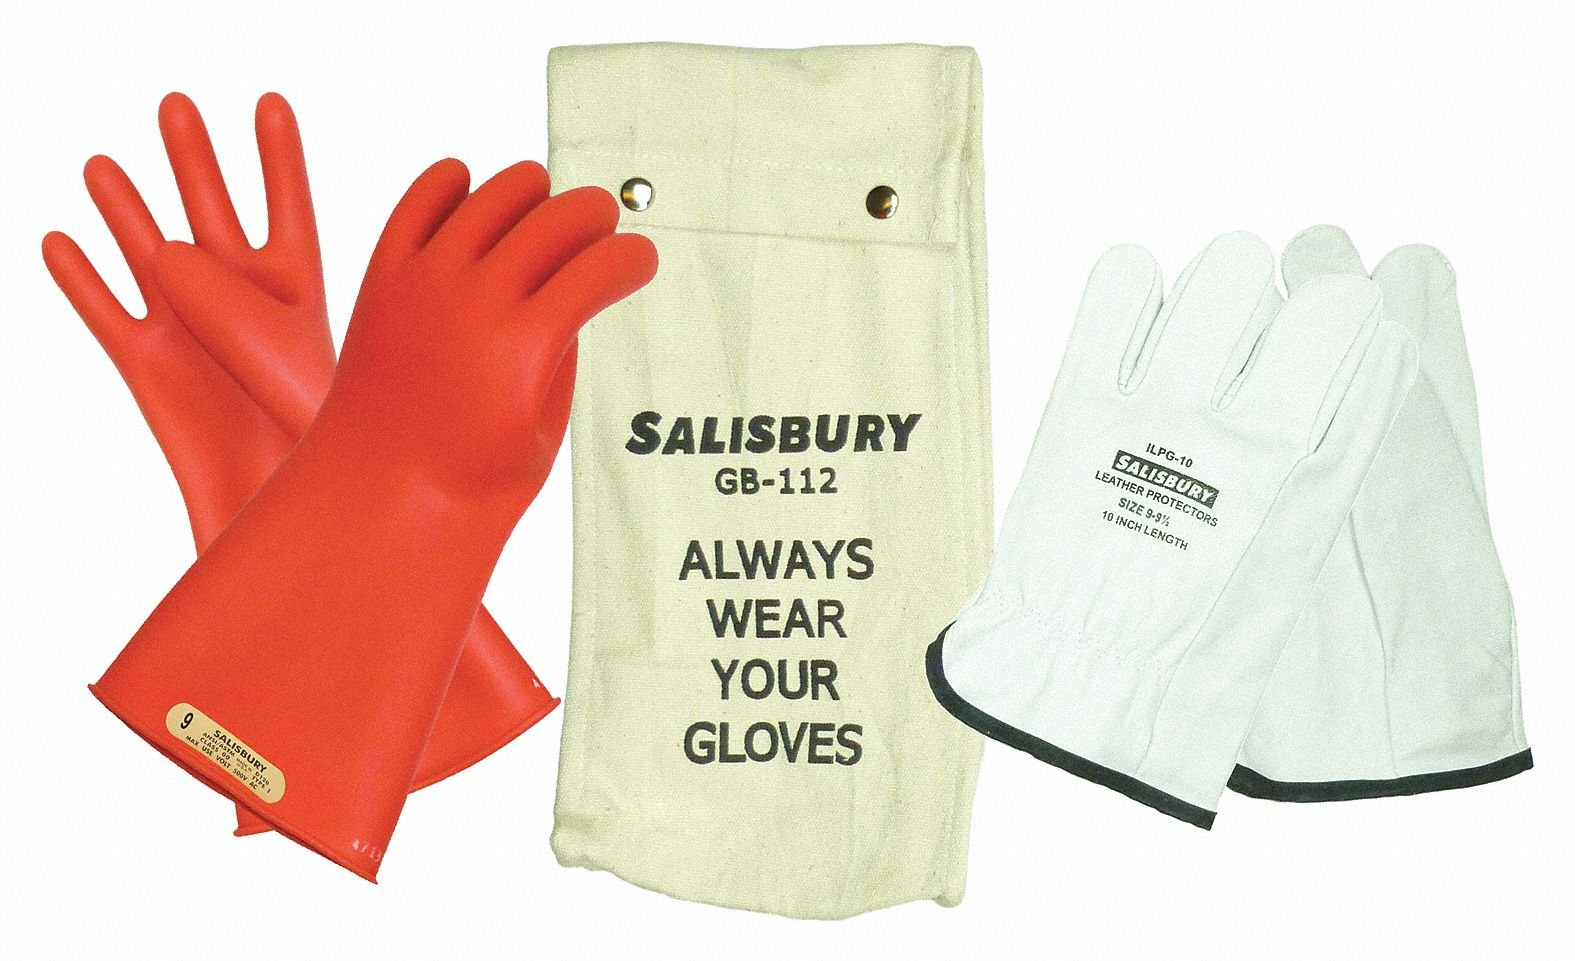 Salisbury Red Electrical Glove Kit, Natural Rubber, 00 Class, Size 8 8 Red Natural Rubber GK0011R/8 - 1 Each